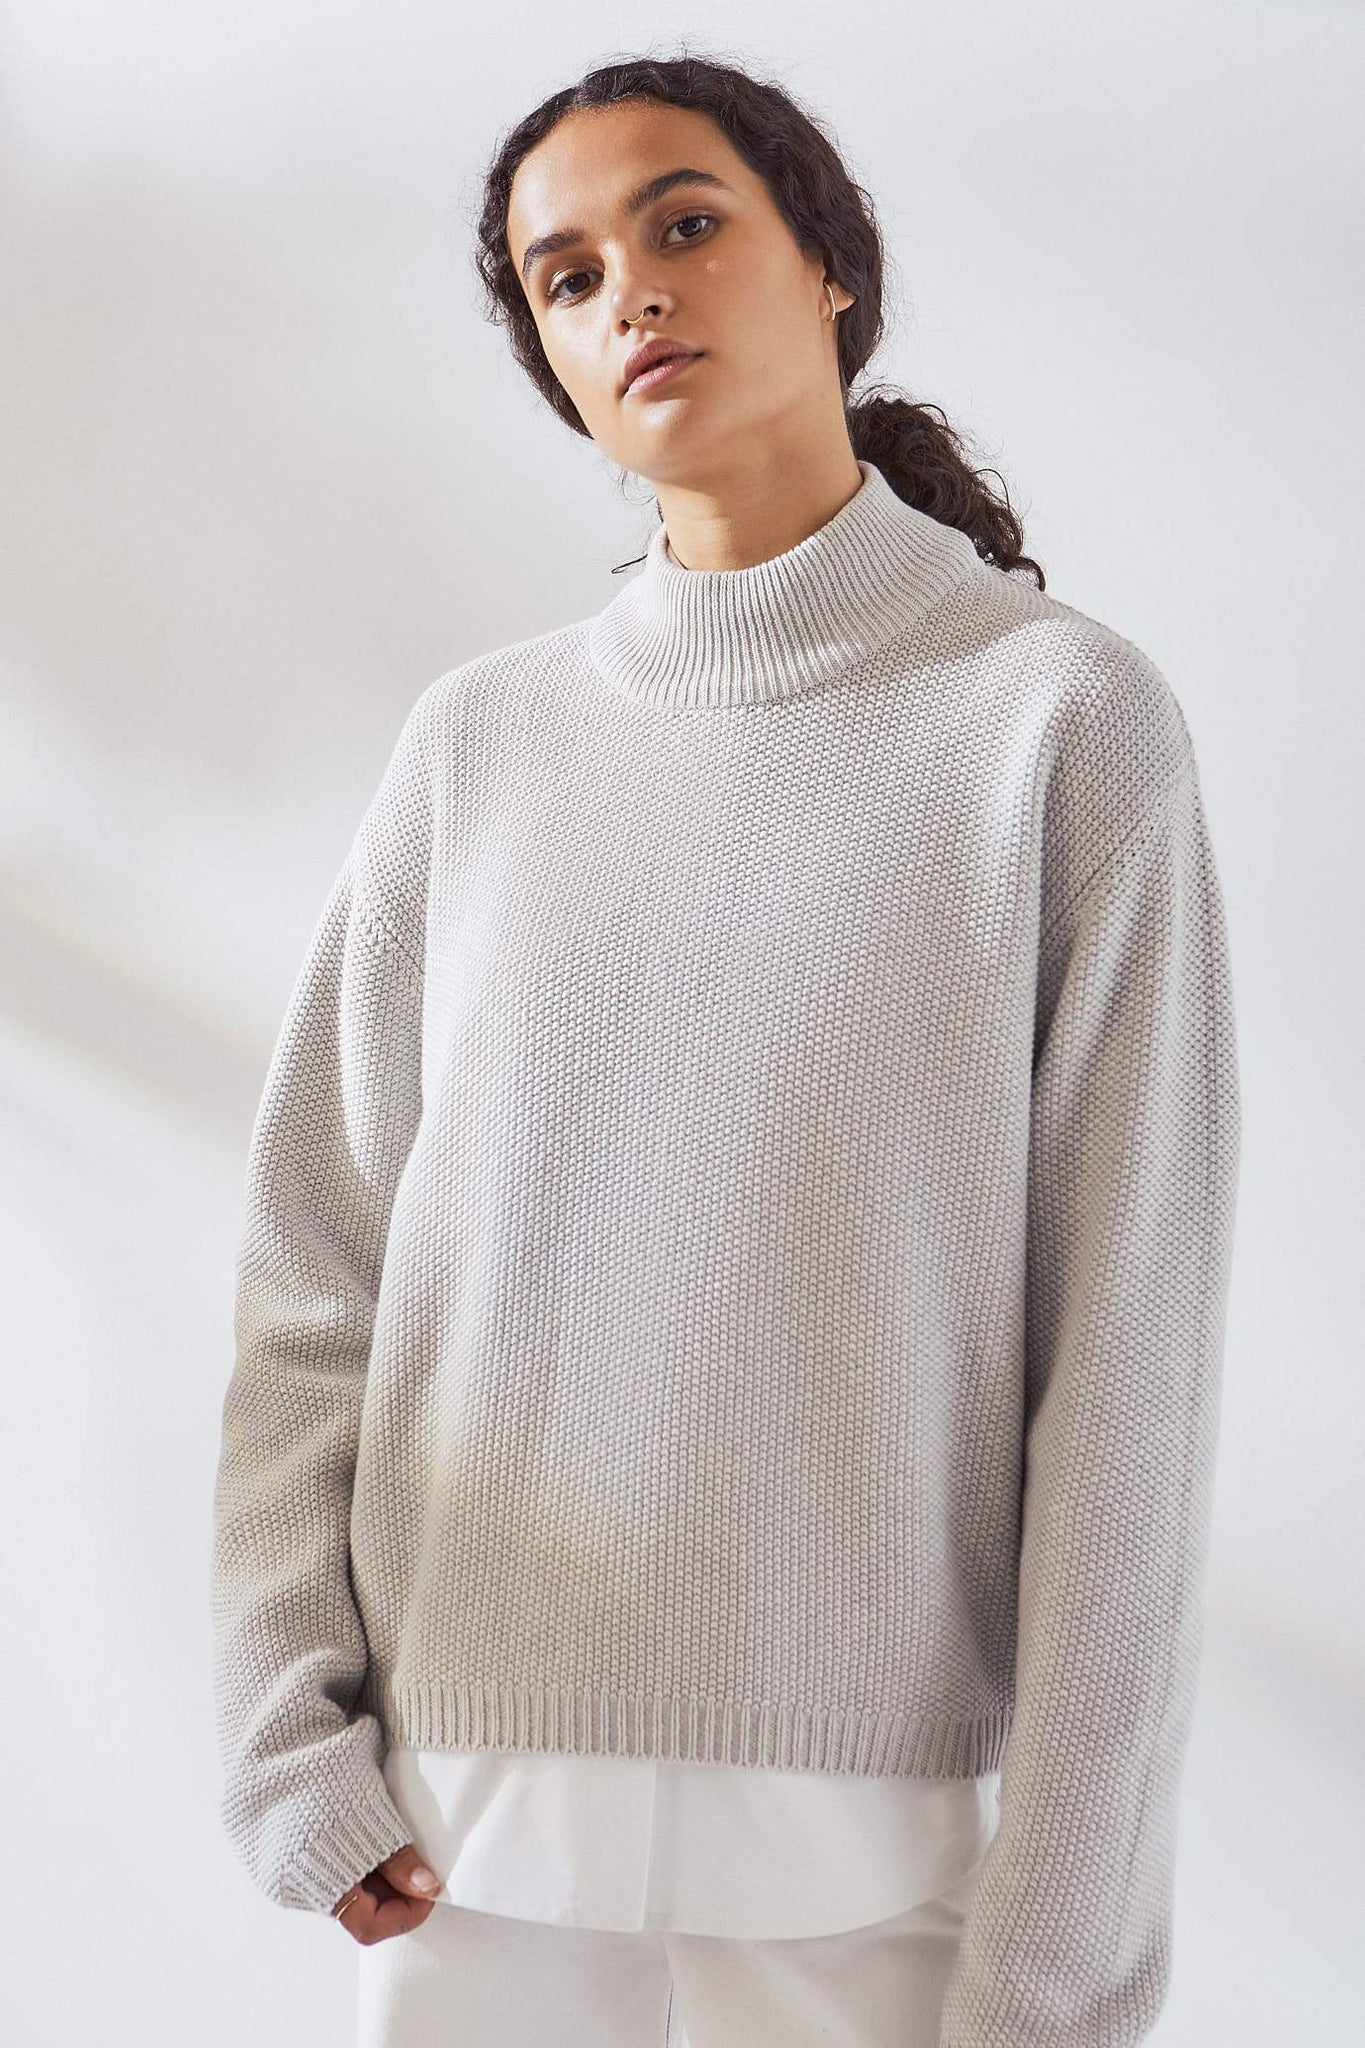 Pace Crew Sweater in Grey Marl